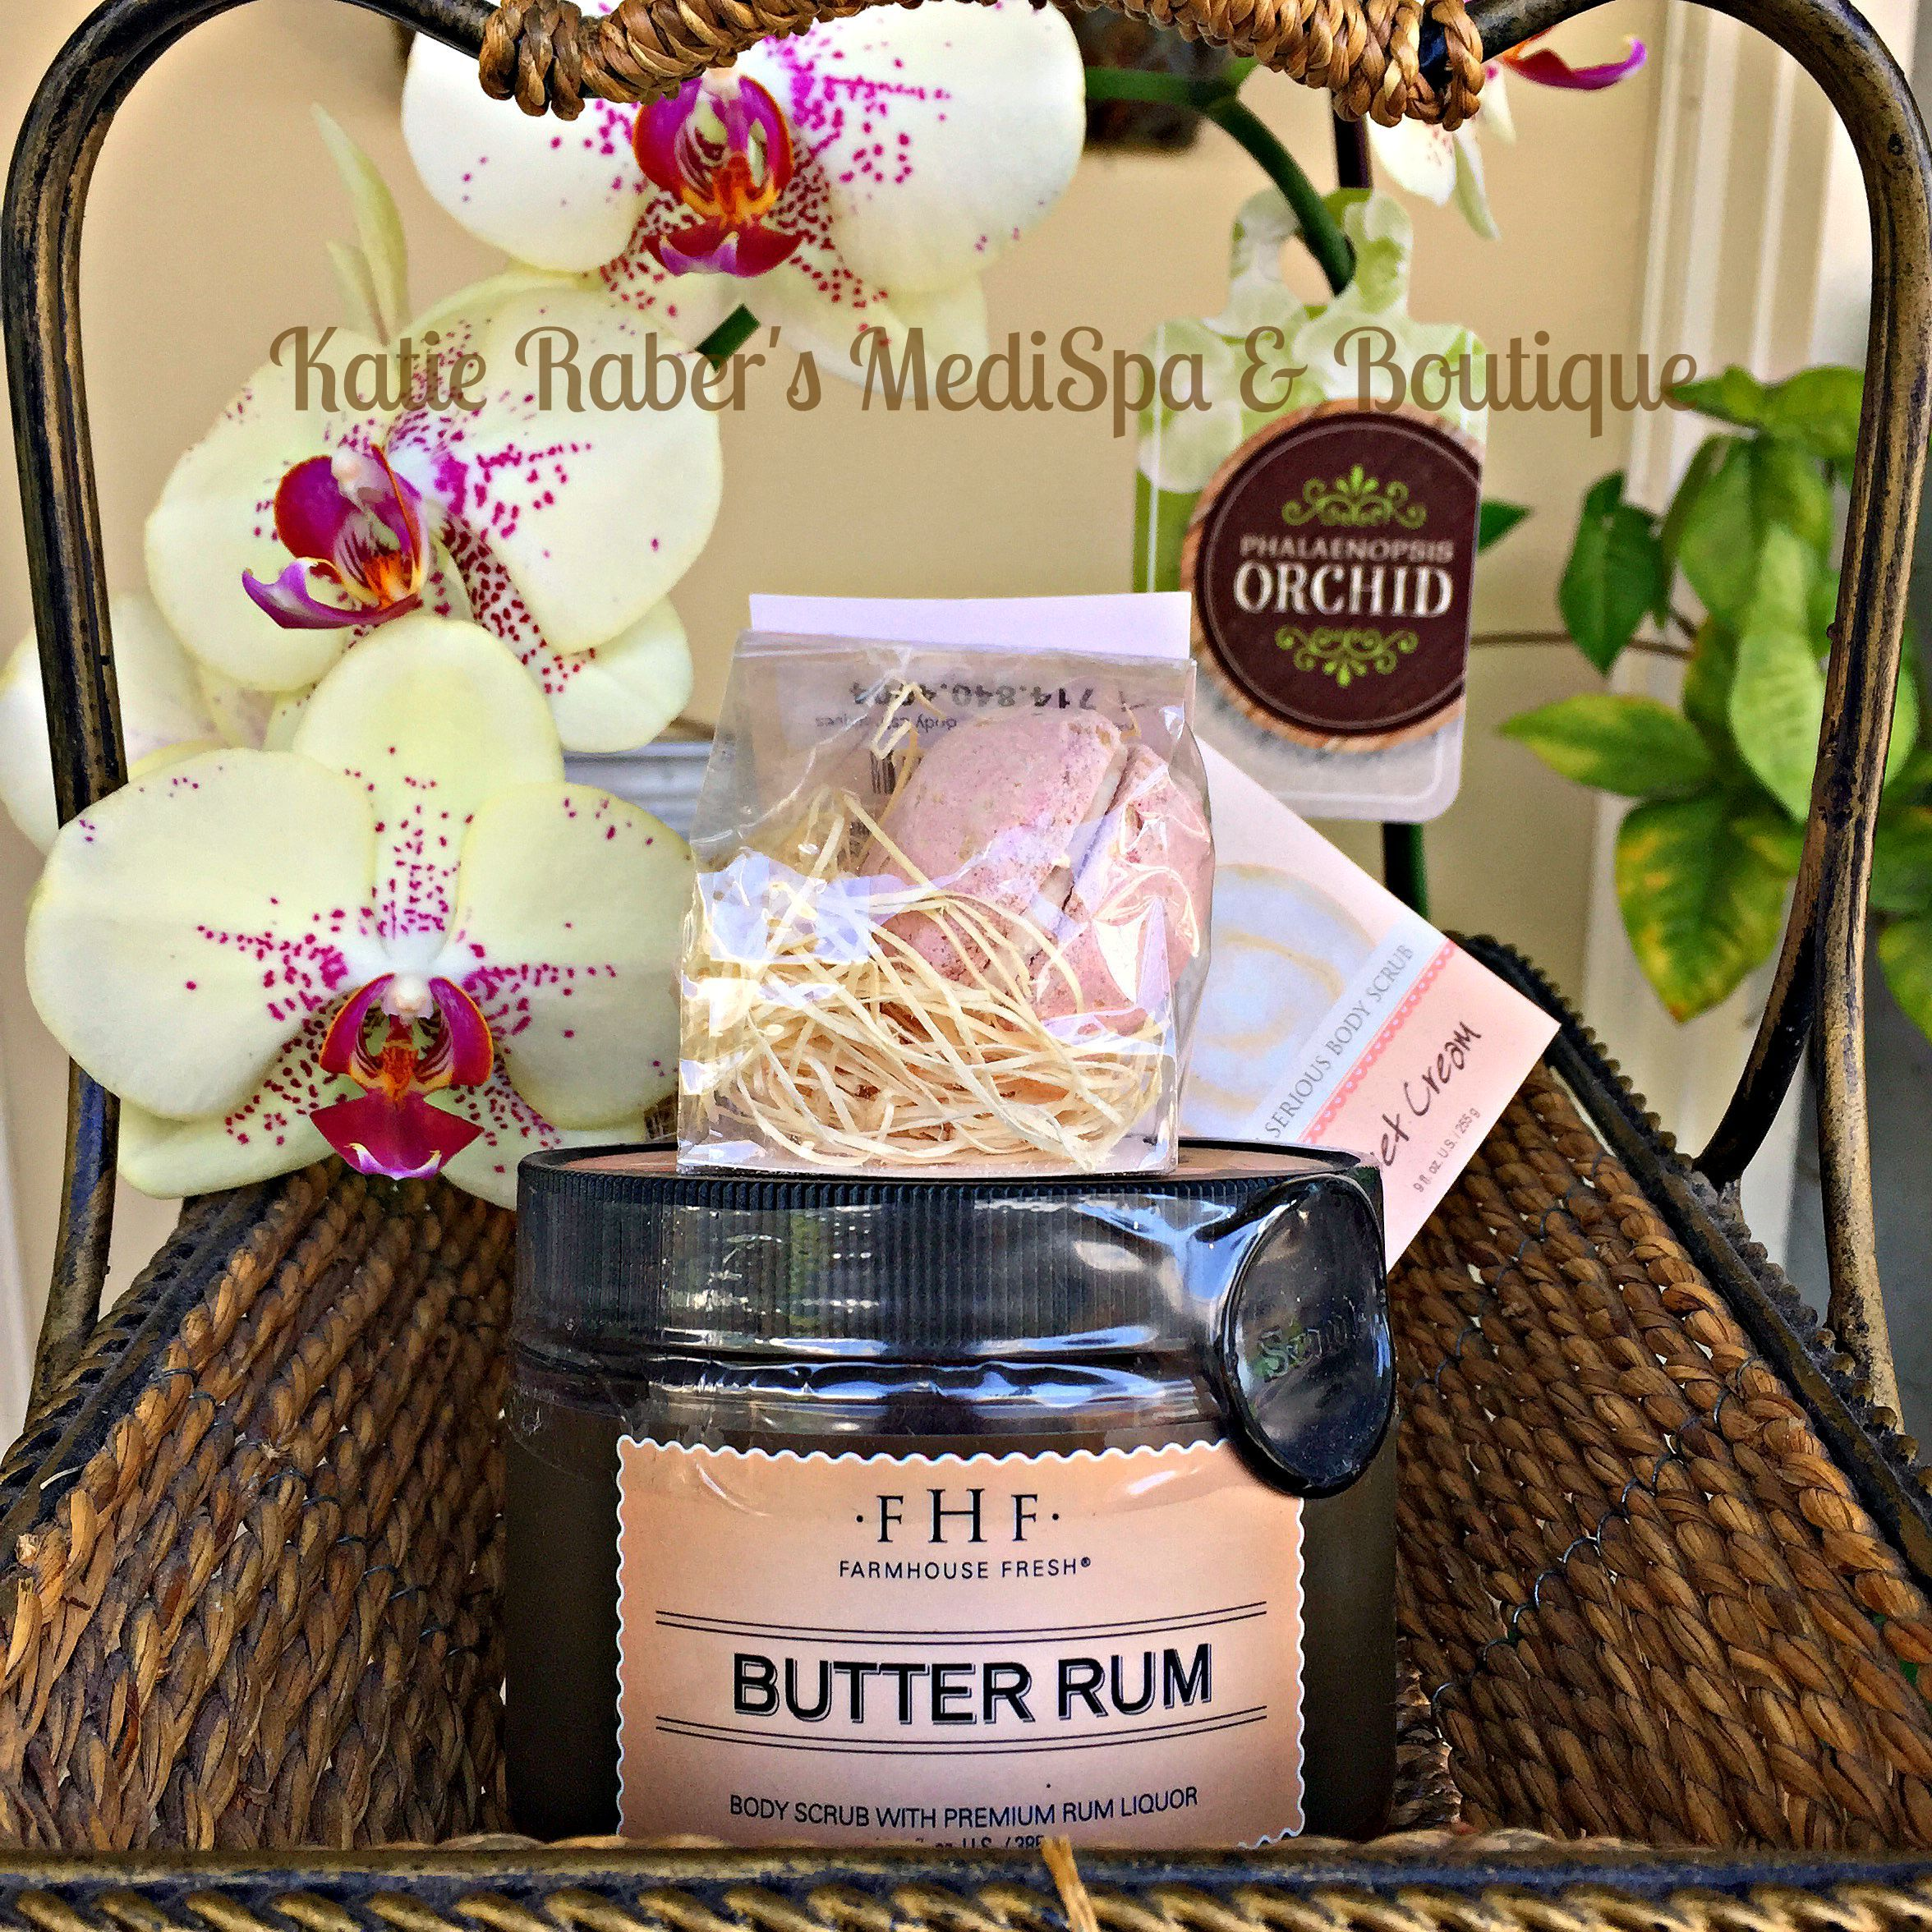 Featuring Farm House Fresh intoxicating Butter Rum Body